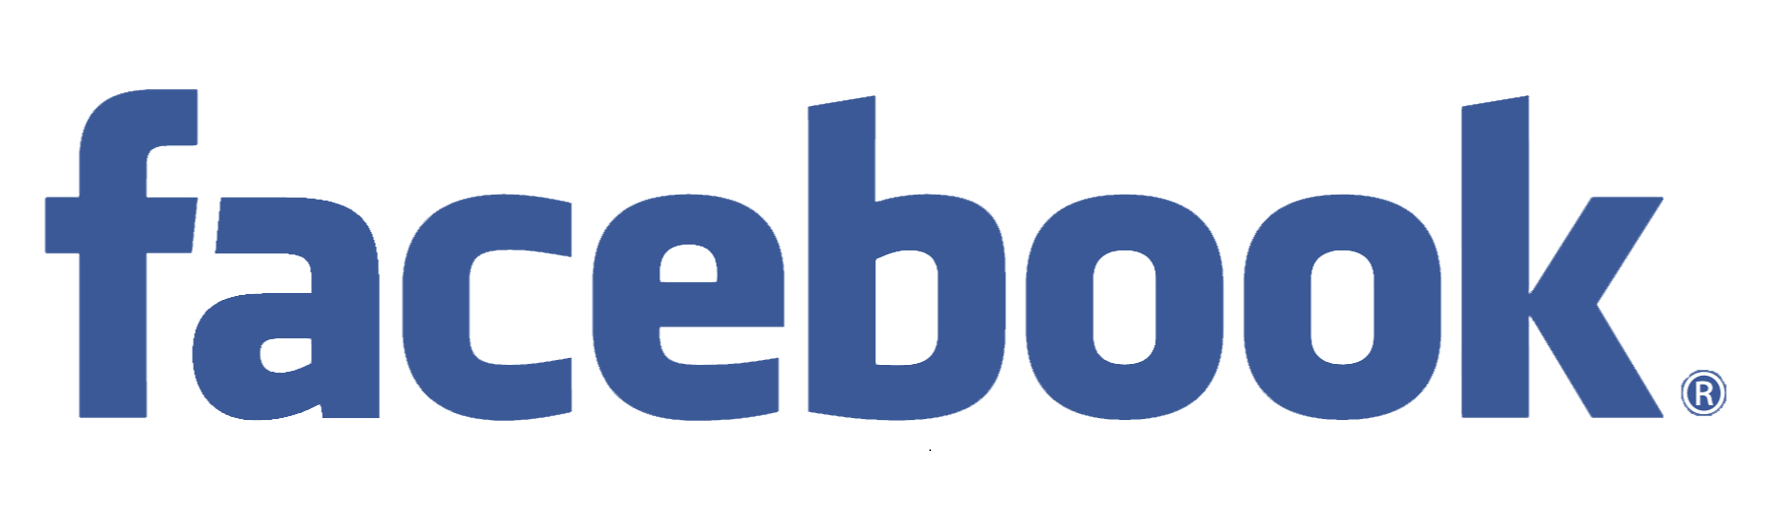 facebook-text-logo-transparent-10